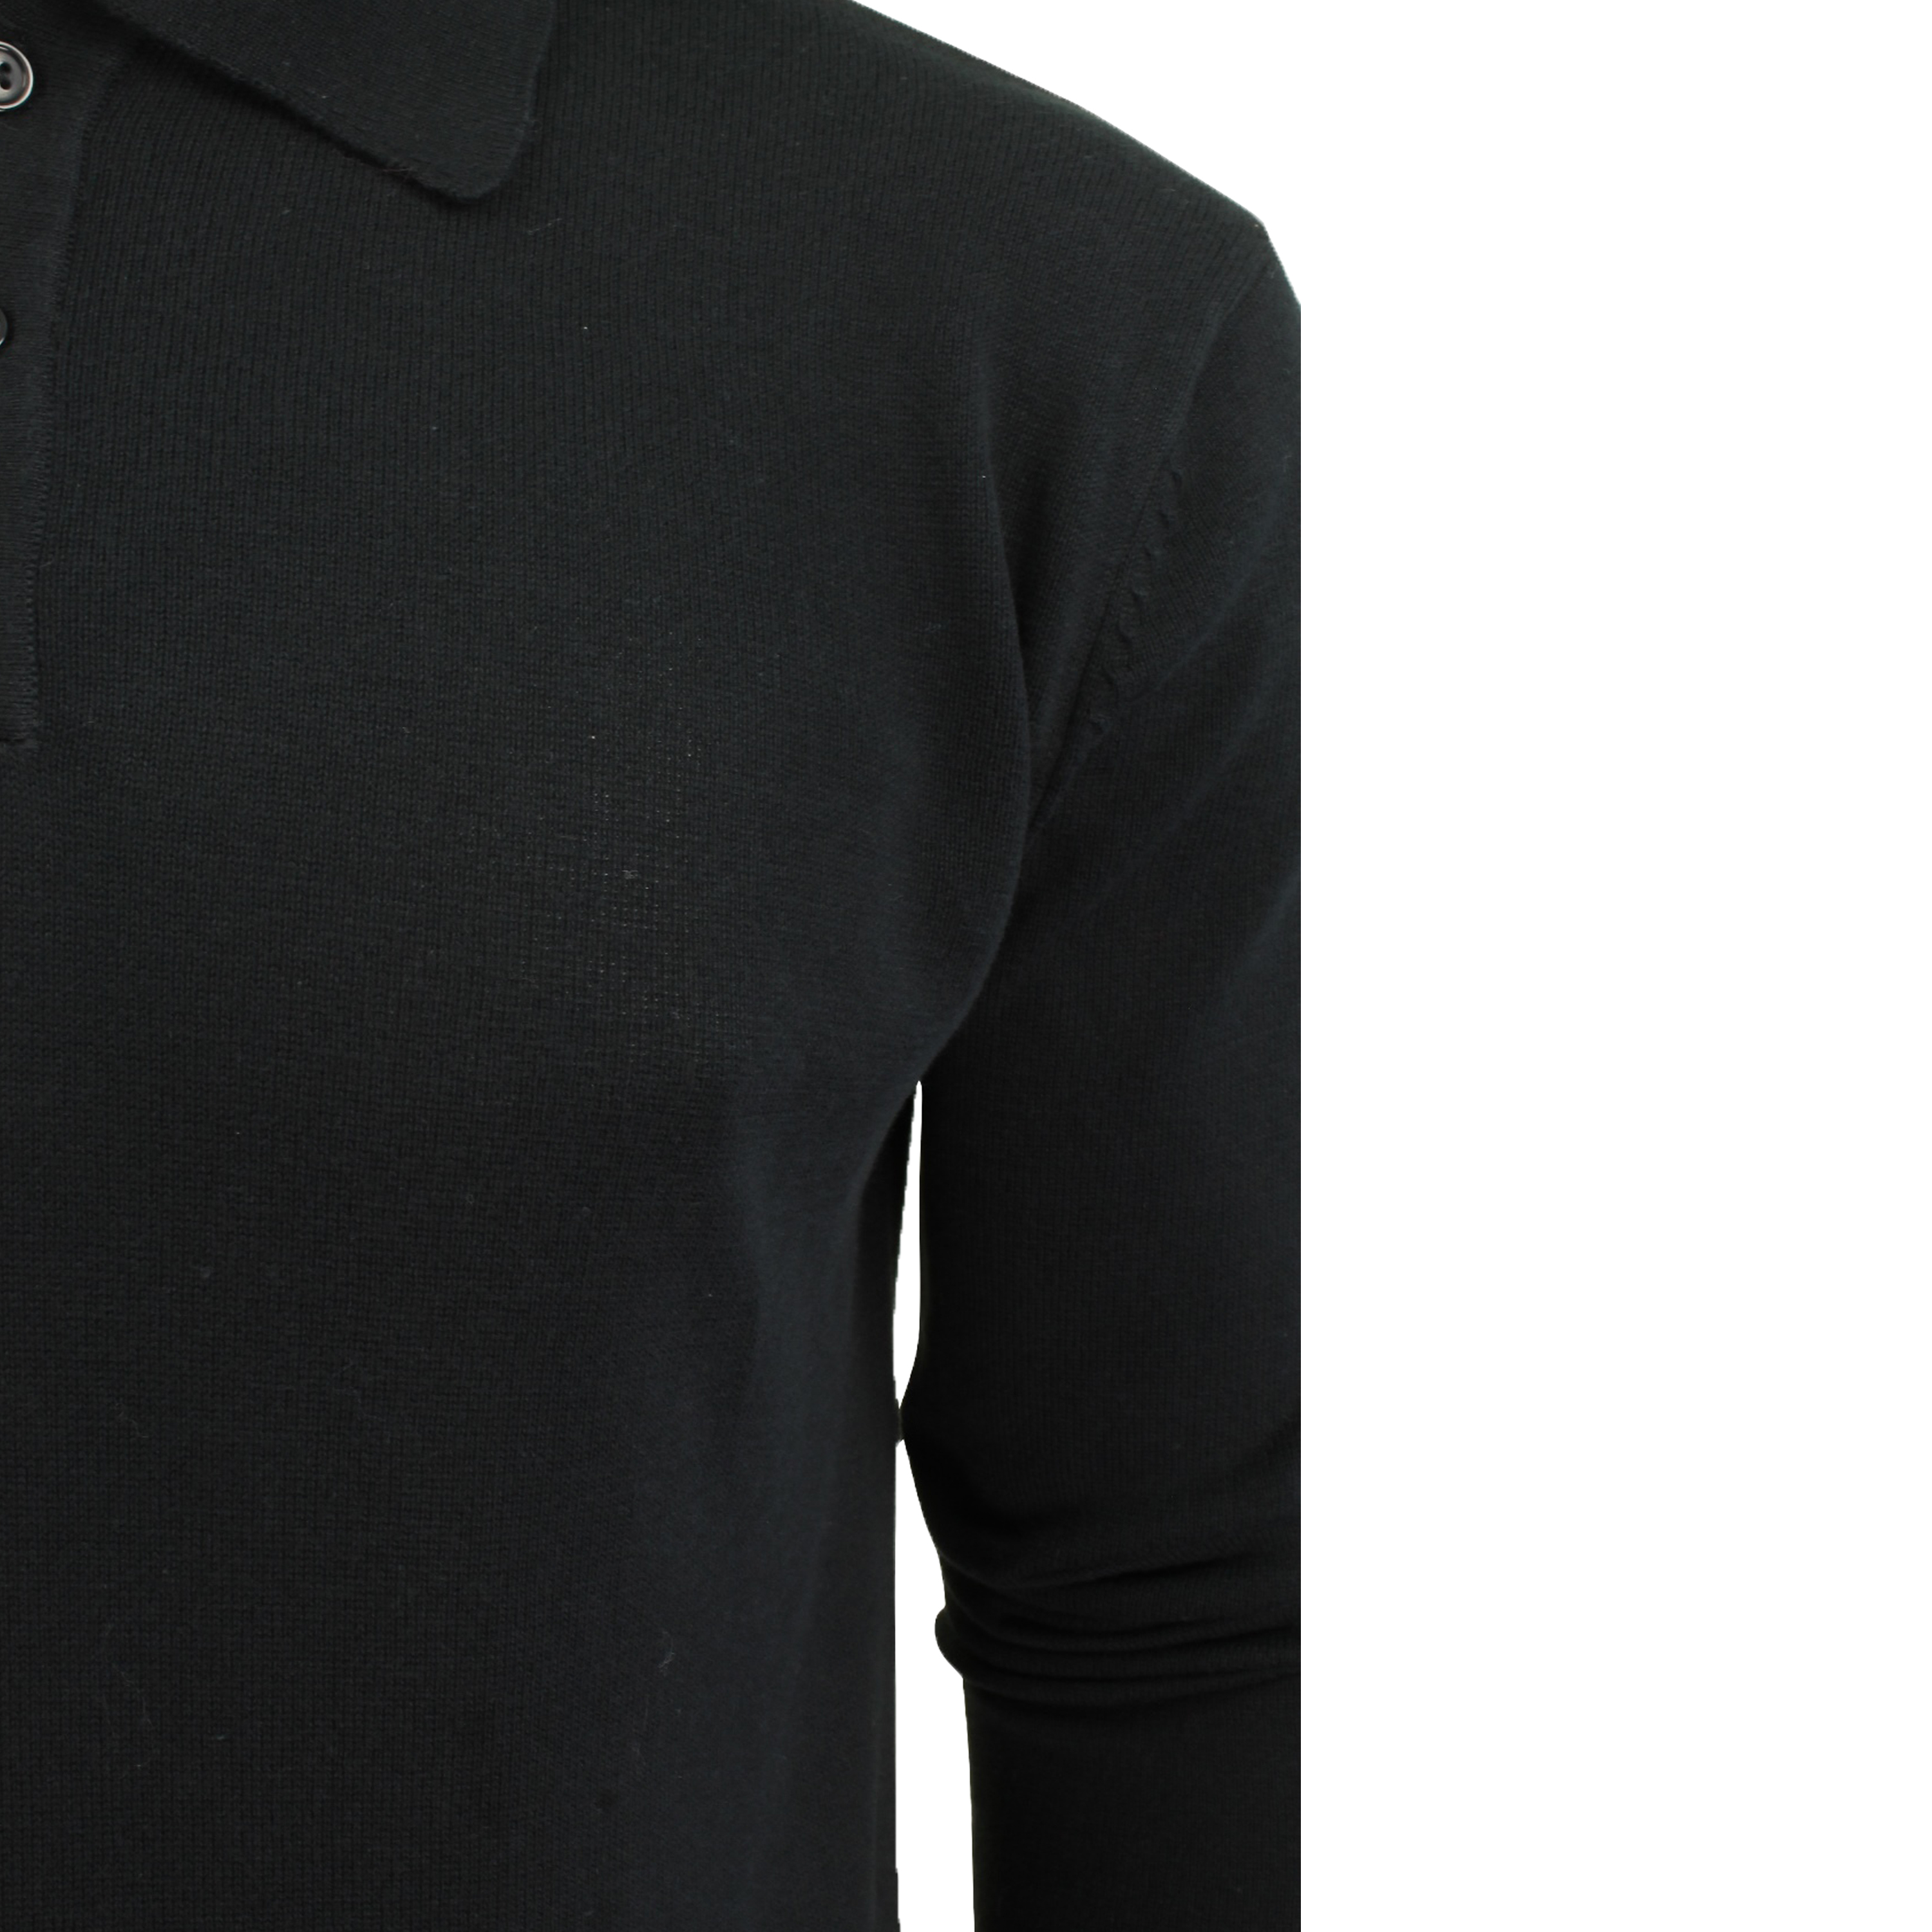 Mens-Knitted-Jumper-Brave-Soul-Polo-Top-Sweater-PLACKET-Pullover-Lightweight-New thumbnail 10